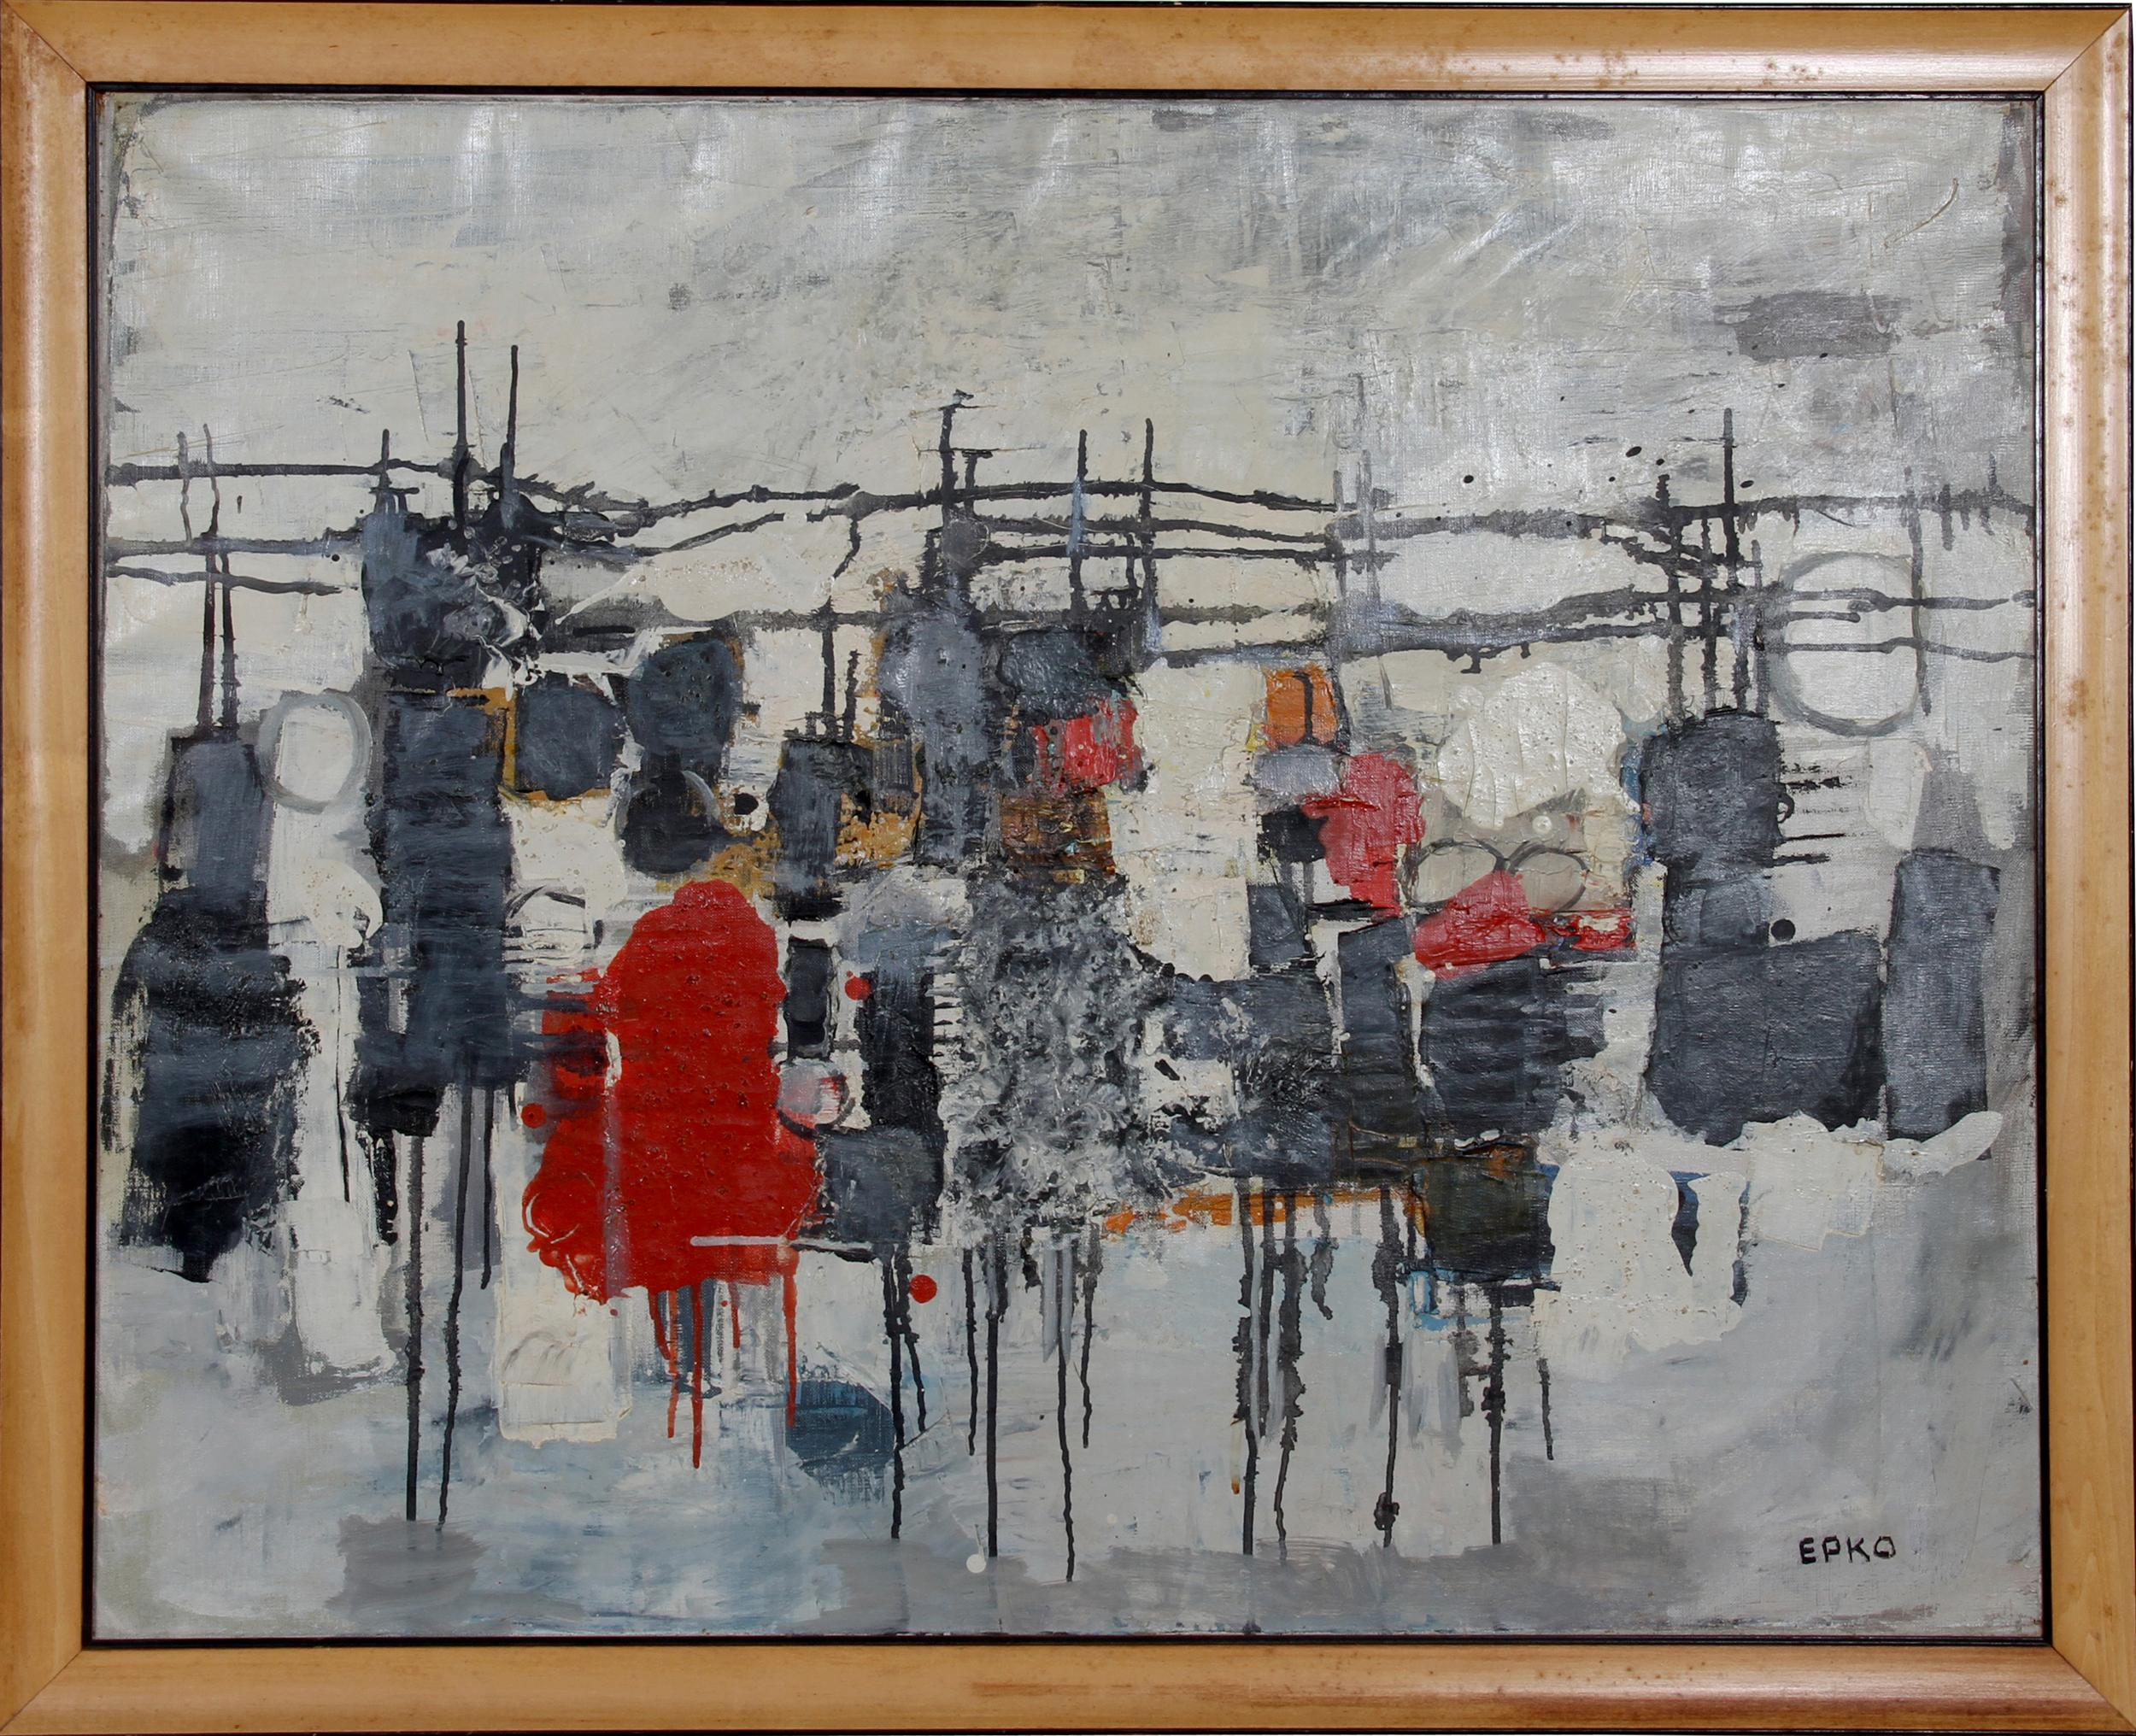 Willering Epko, Barbed Wire, Oil Painting